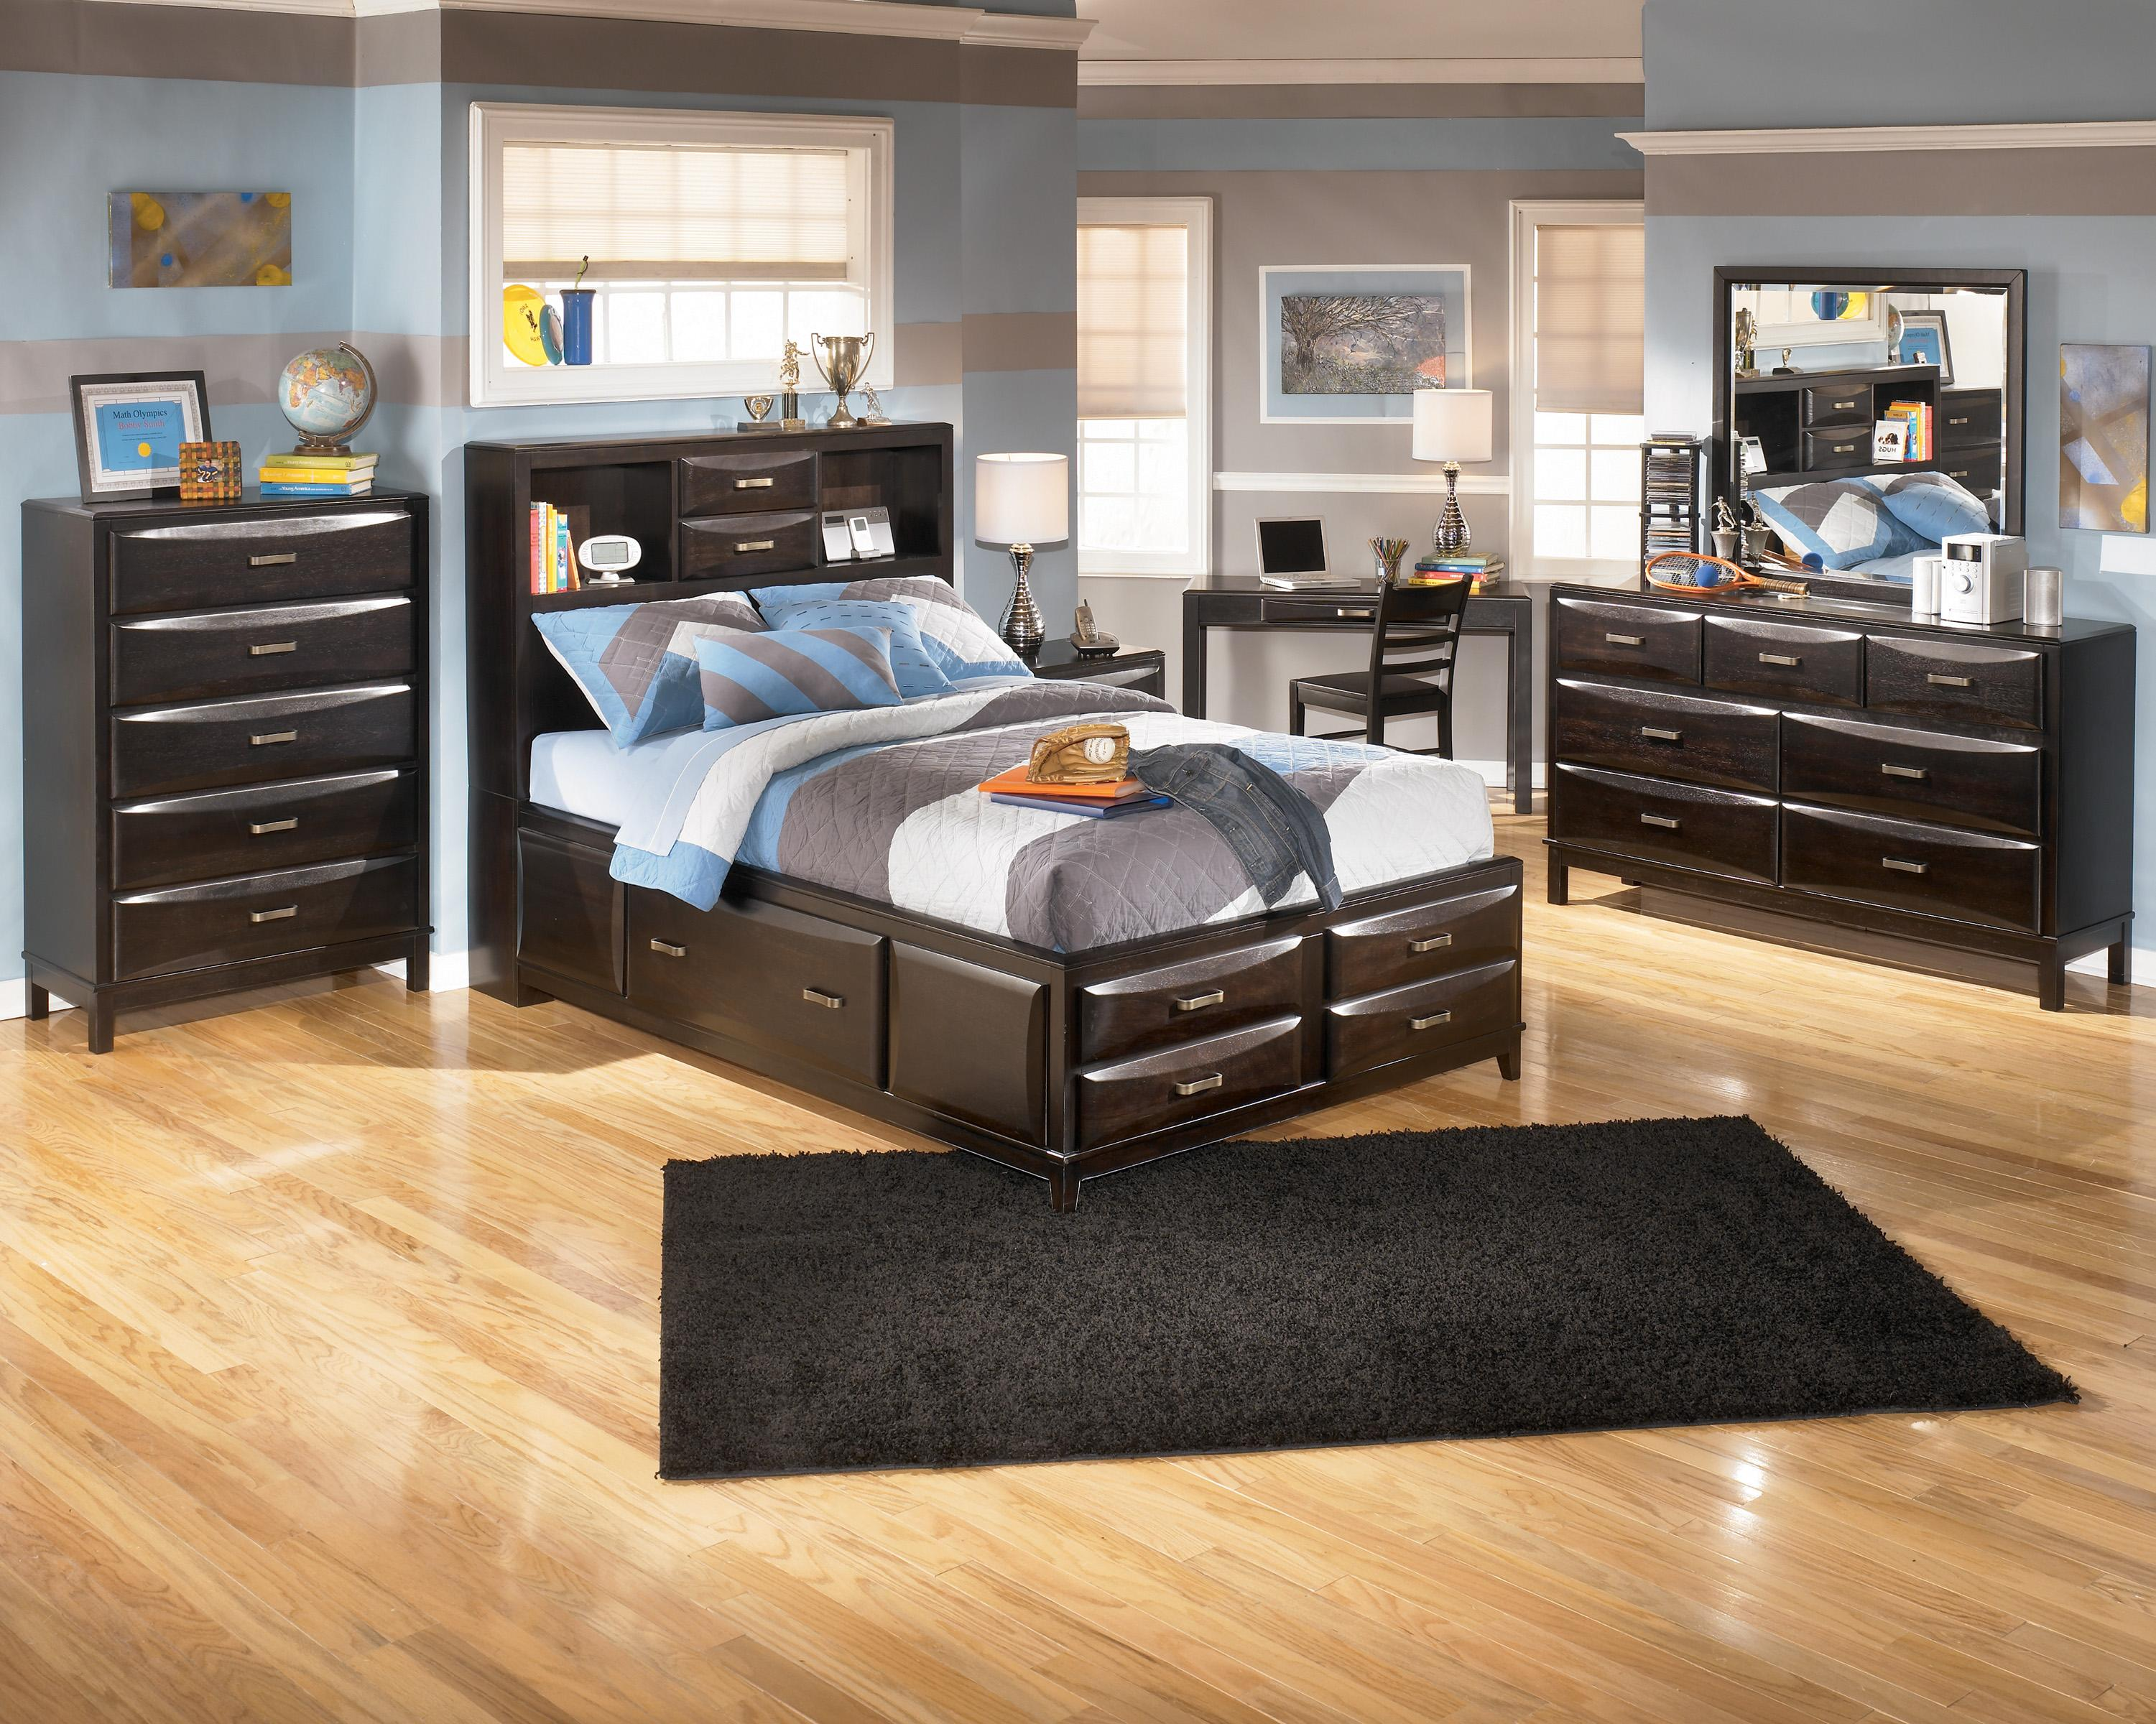 Ashley Furniture Kira Full Storage Bed Dunk Bright Furniture Captain 39 S Beds